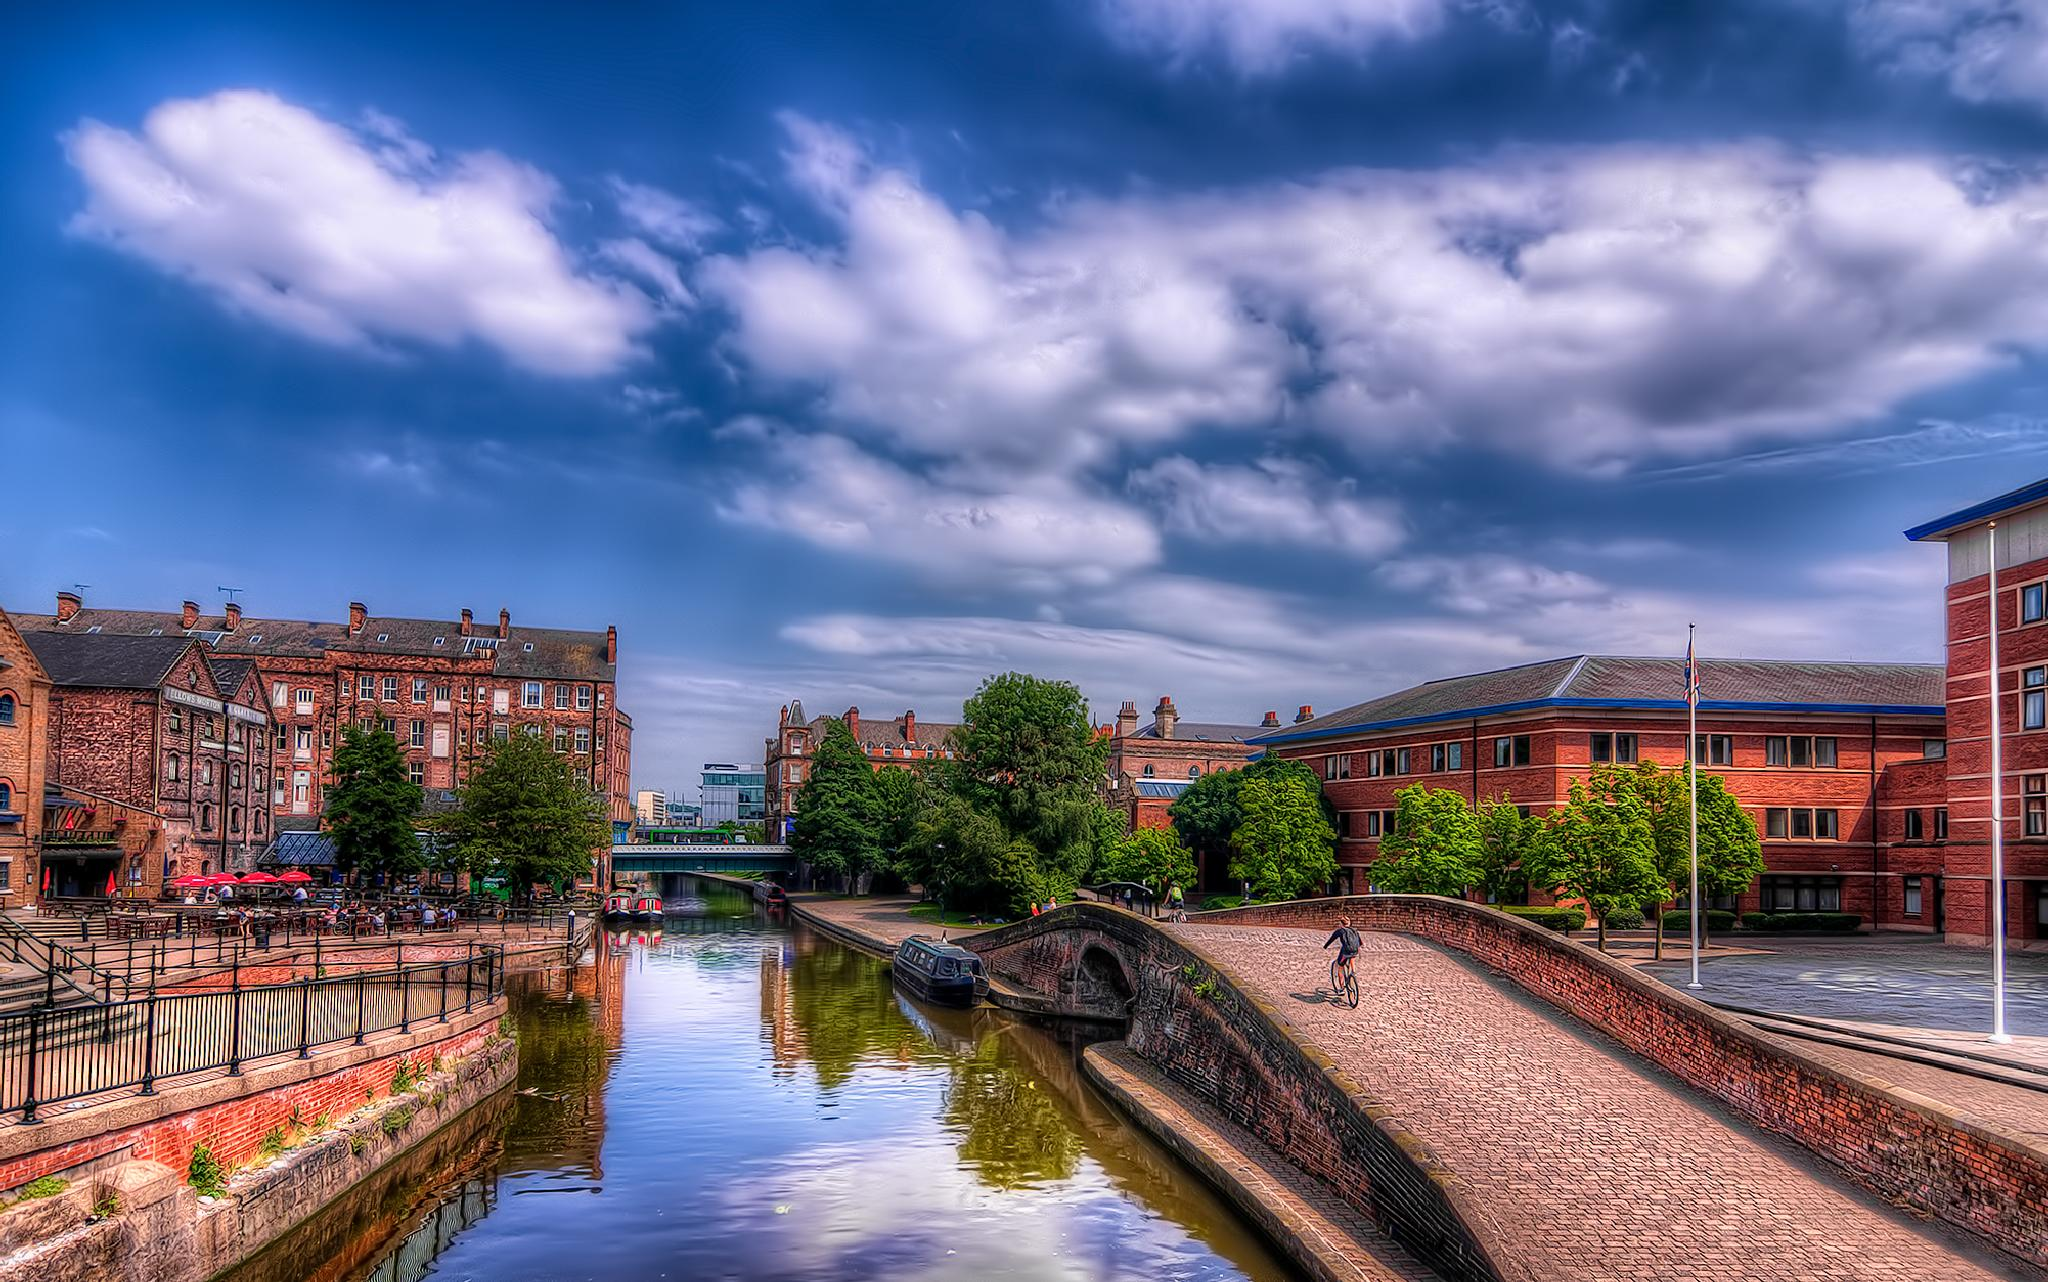 Nottingham Canal by Darrell Burnett